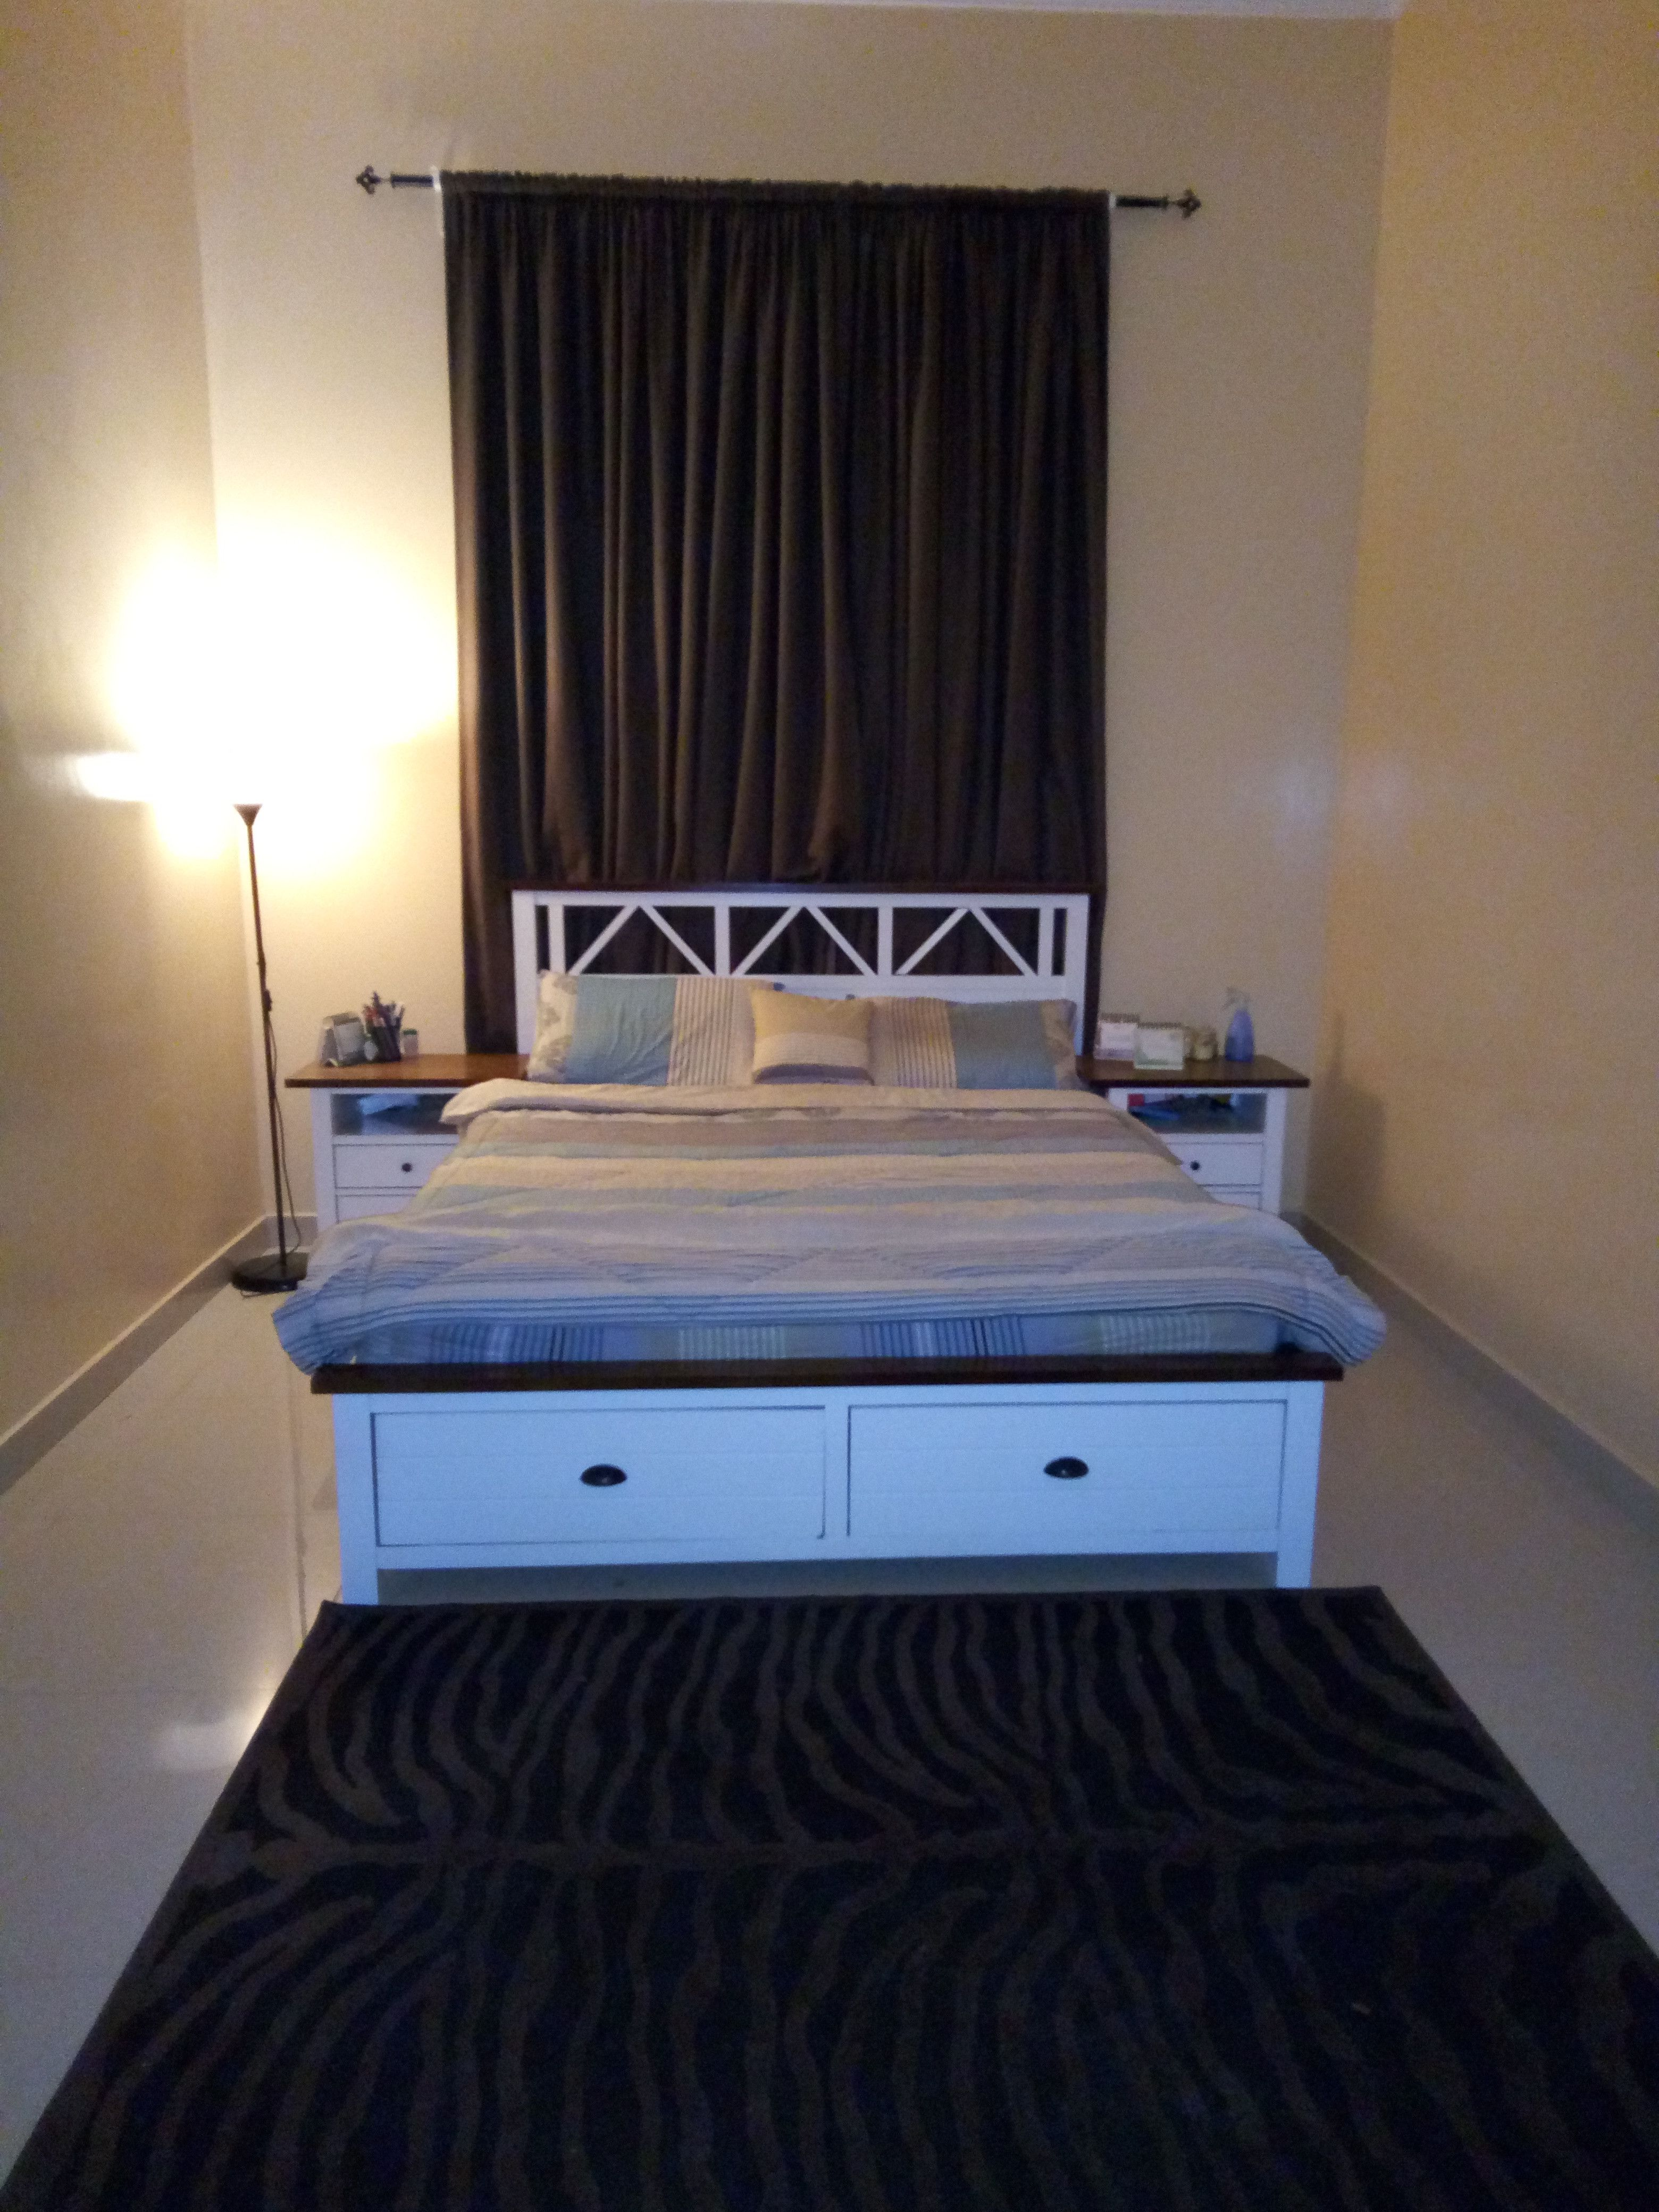 A Very Good Condition Bed Set For Urgent Sale From Pan